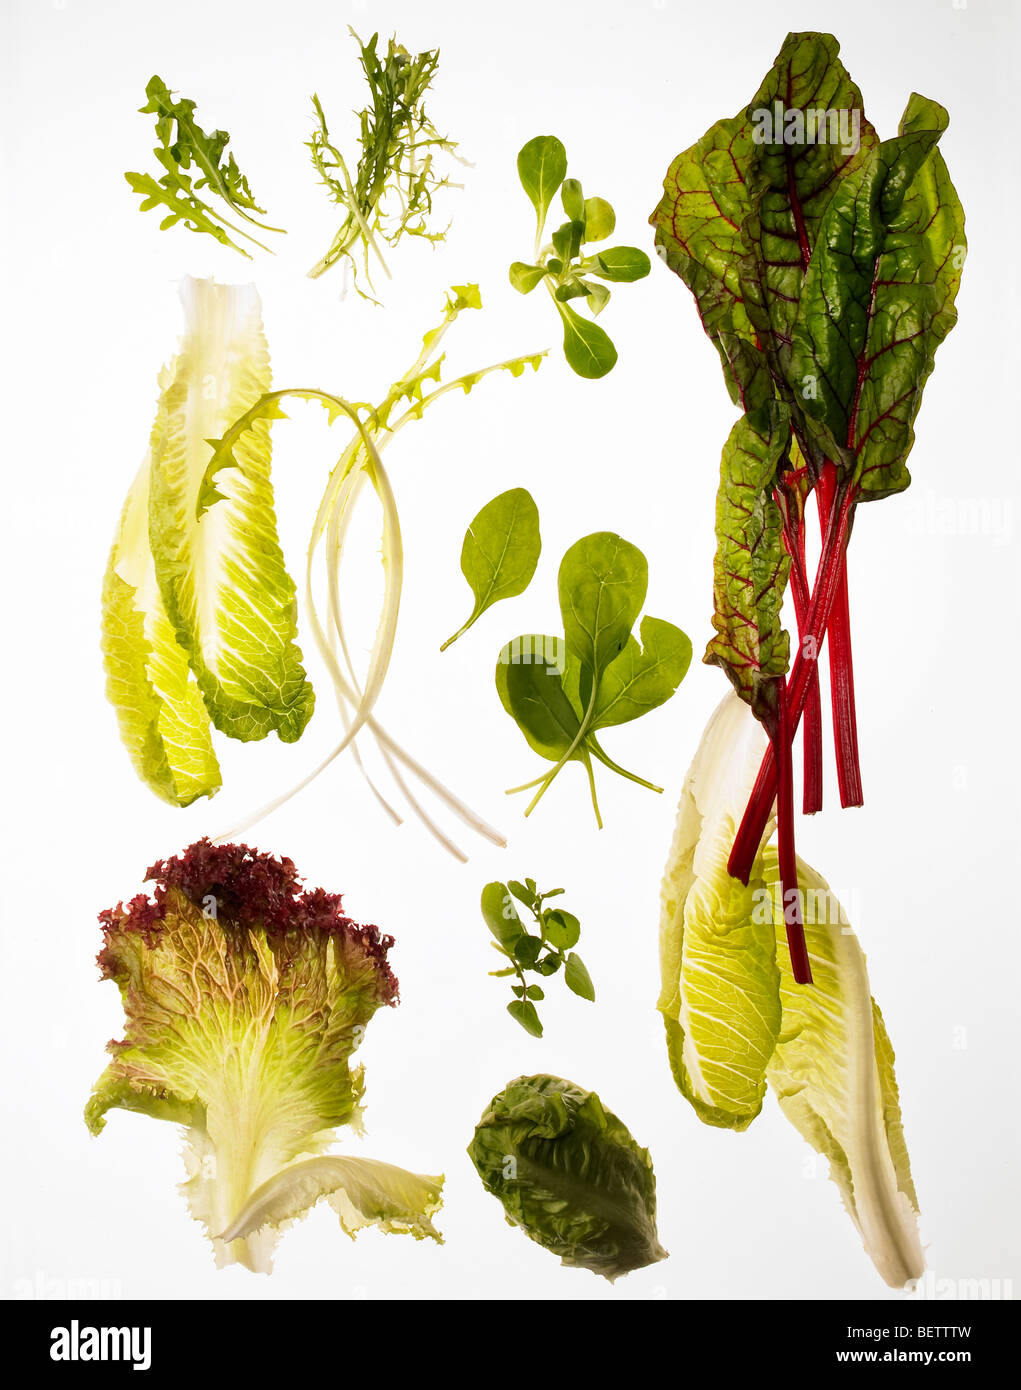 Salad ingredients, different green leaves suitable for salads. Stock Photo